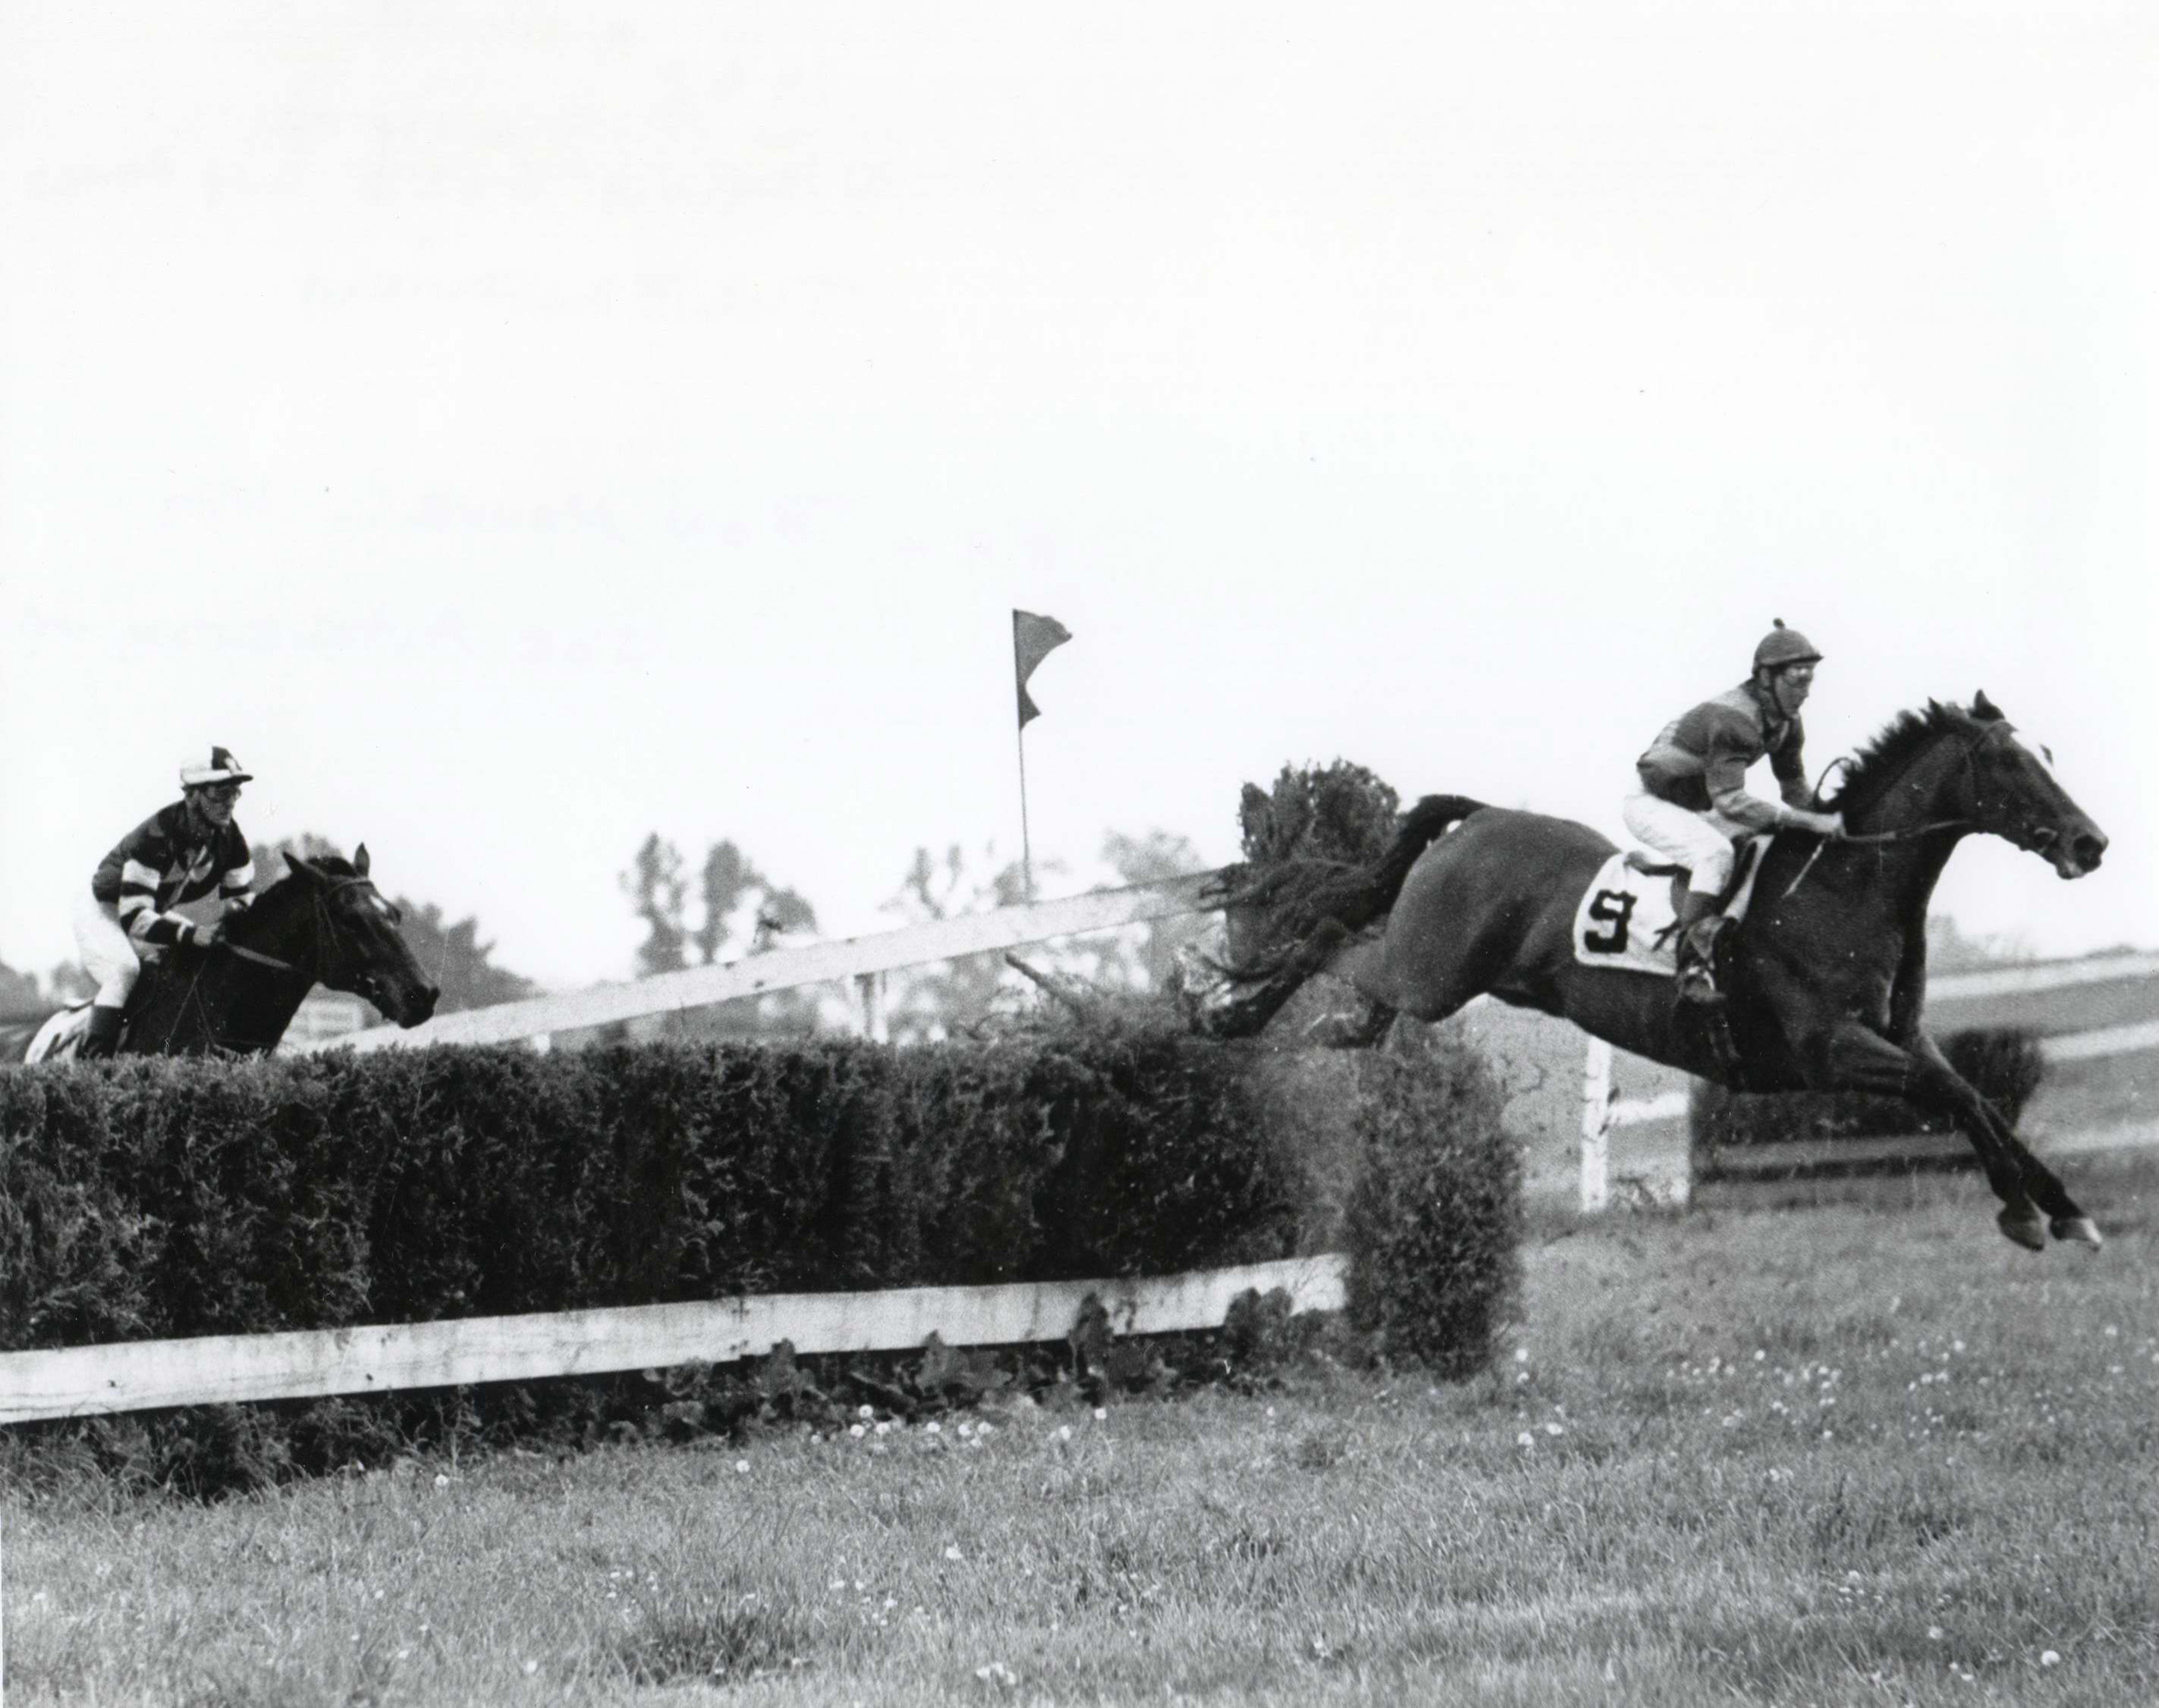 Bon Nouvel (Joe Aitcheson up) going over a jump at the Broadview on May 4, 1968 in Warrenton, Virginia (Douglas Lees/Museum Collection)